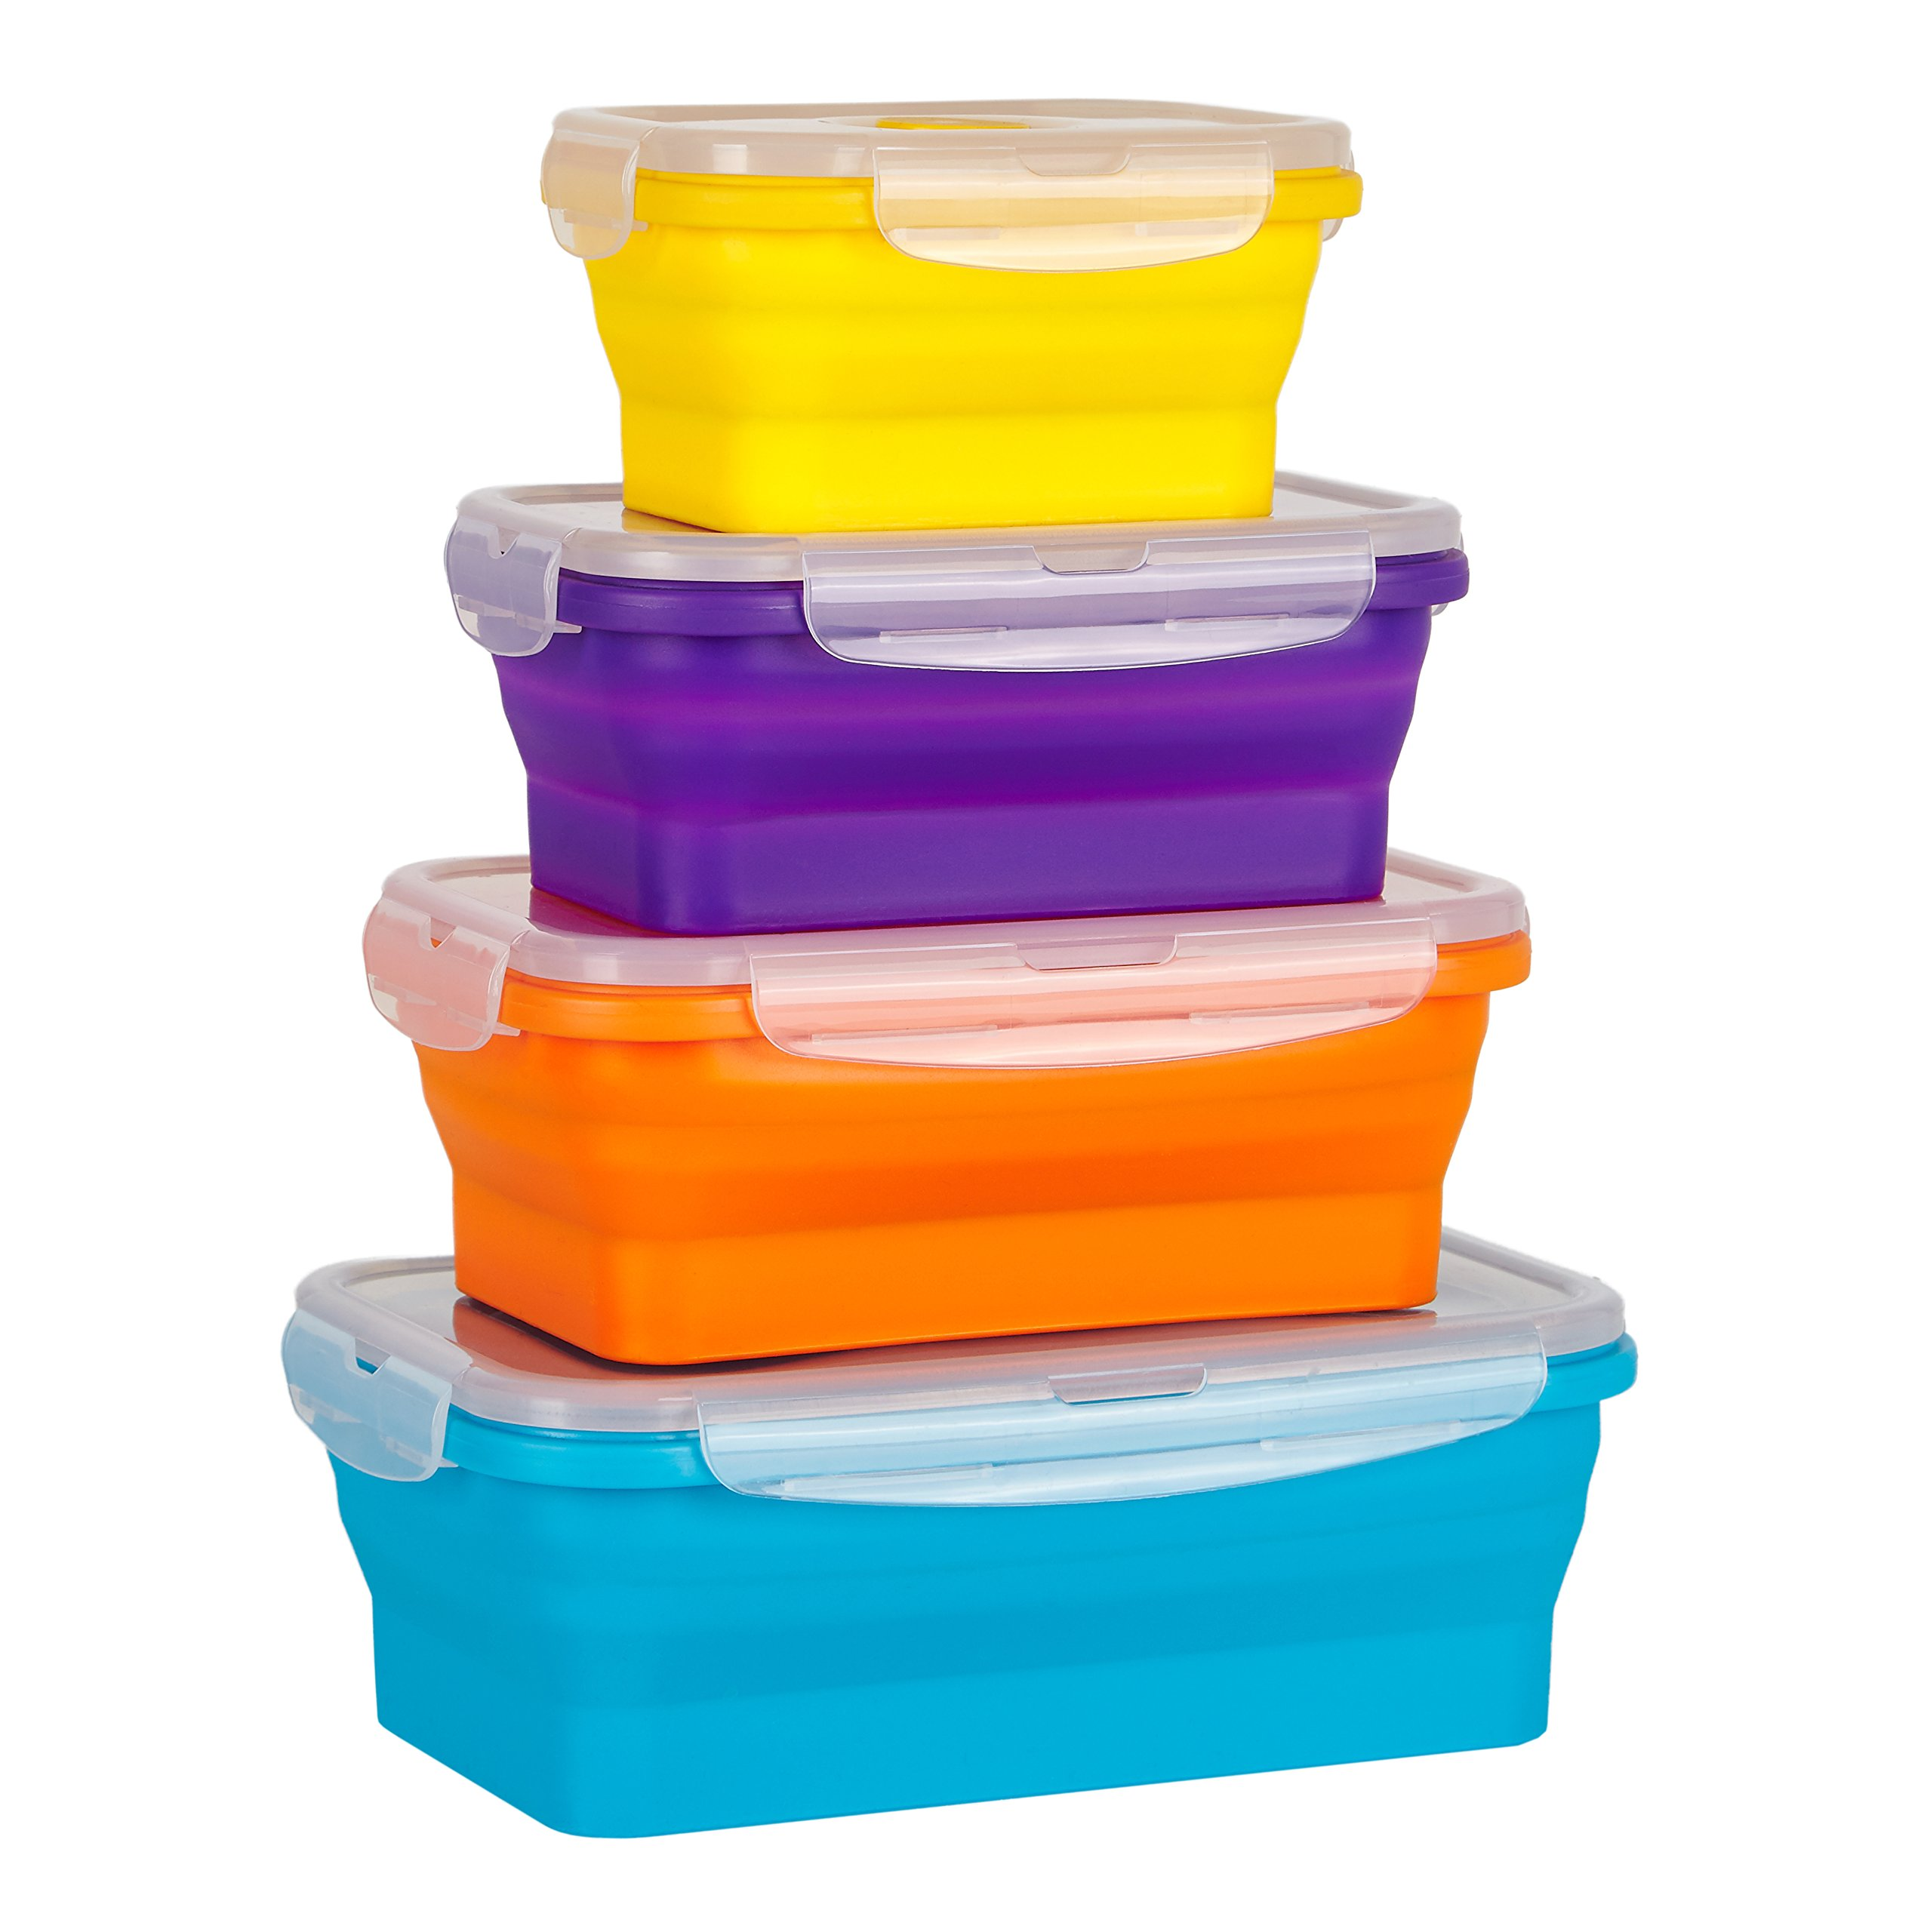 Wowzr Flat Stacks Collapsible Food Storage Containers